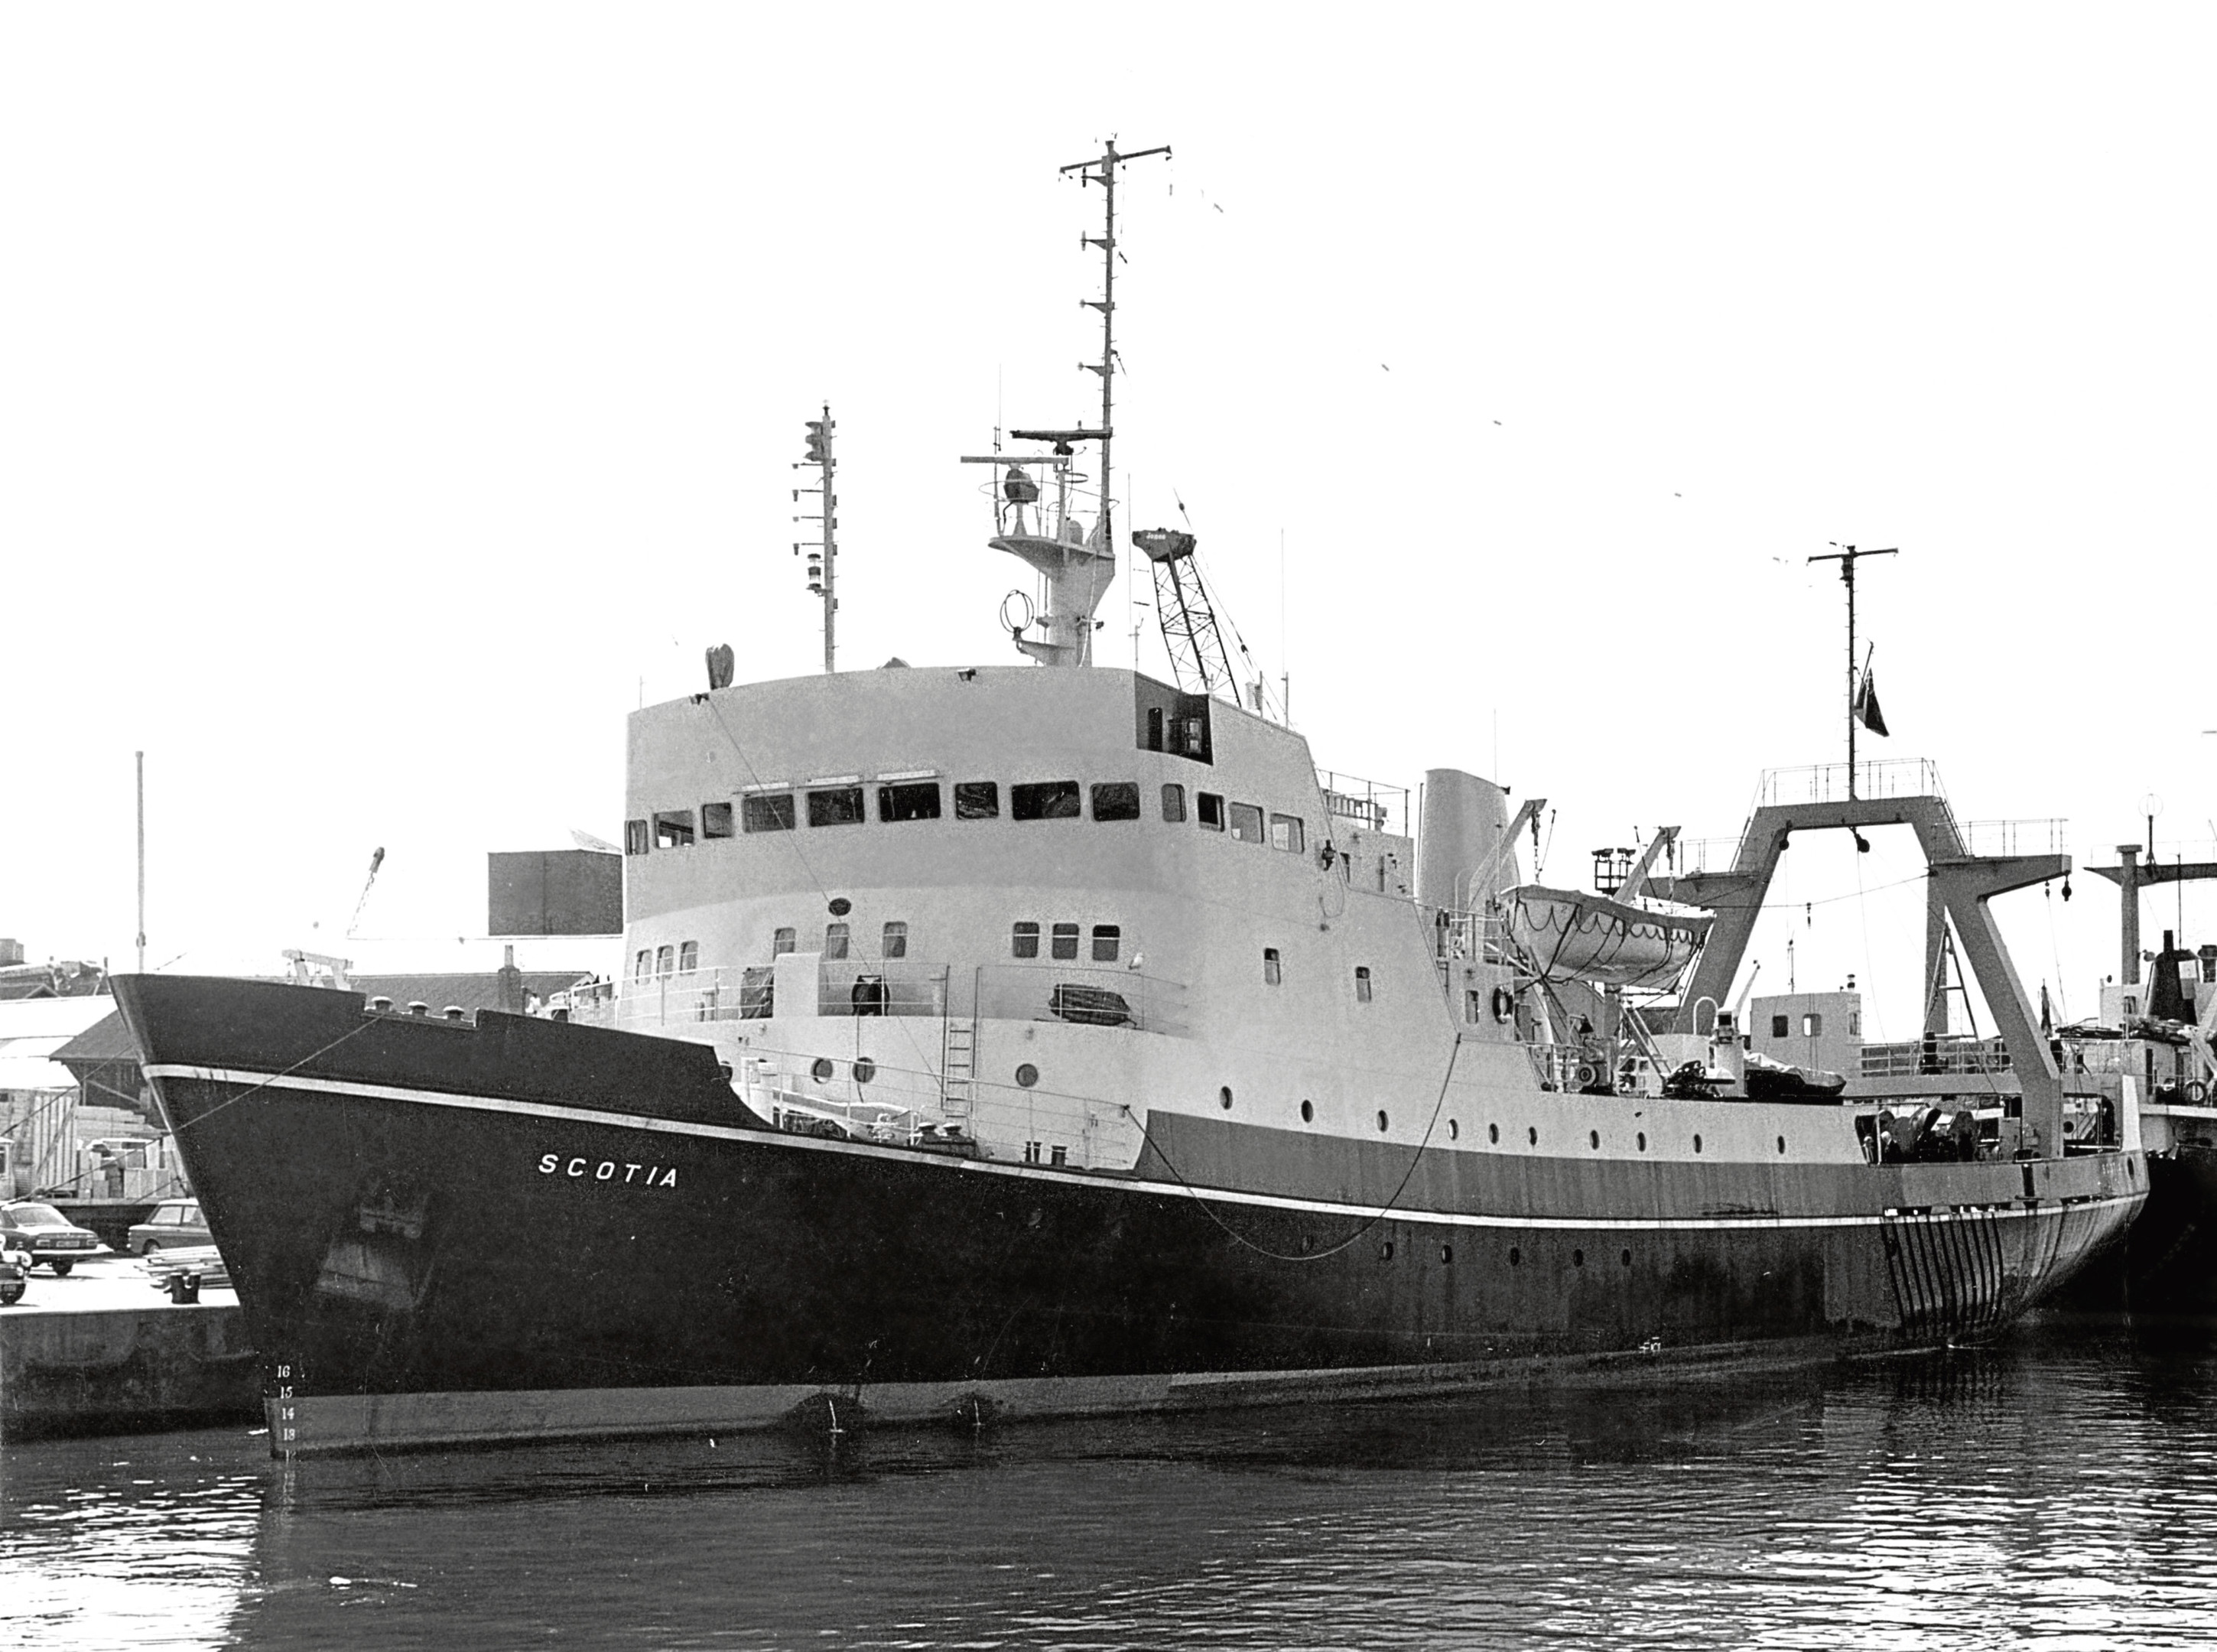 1972: The Scotia, a recently commissioned £130,000 fishery research vessel, berthed in Aberdeen's harbour, just days before she was due to set out to scour the seas off west Greenland.